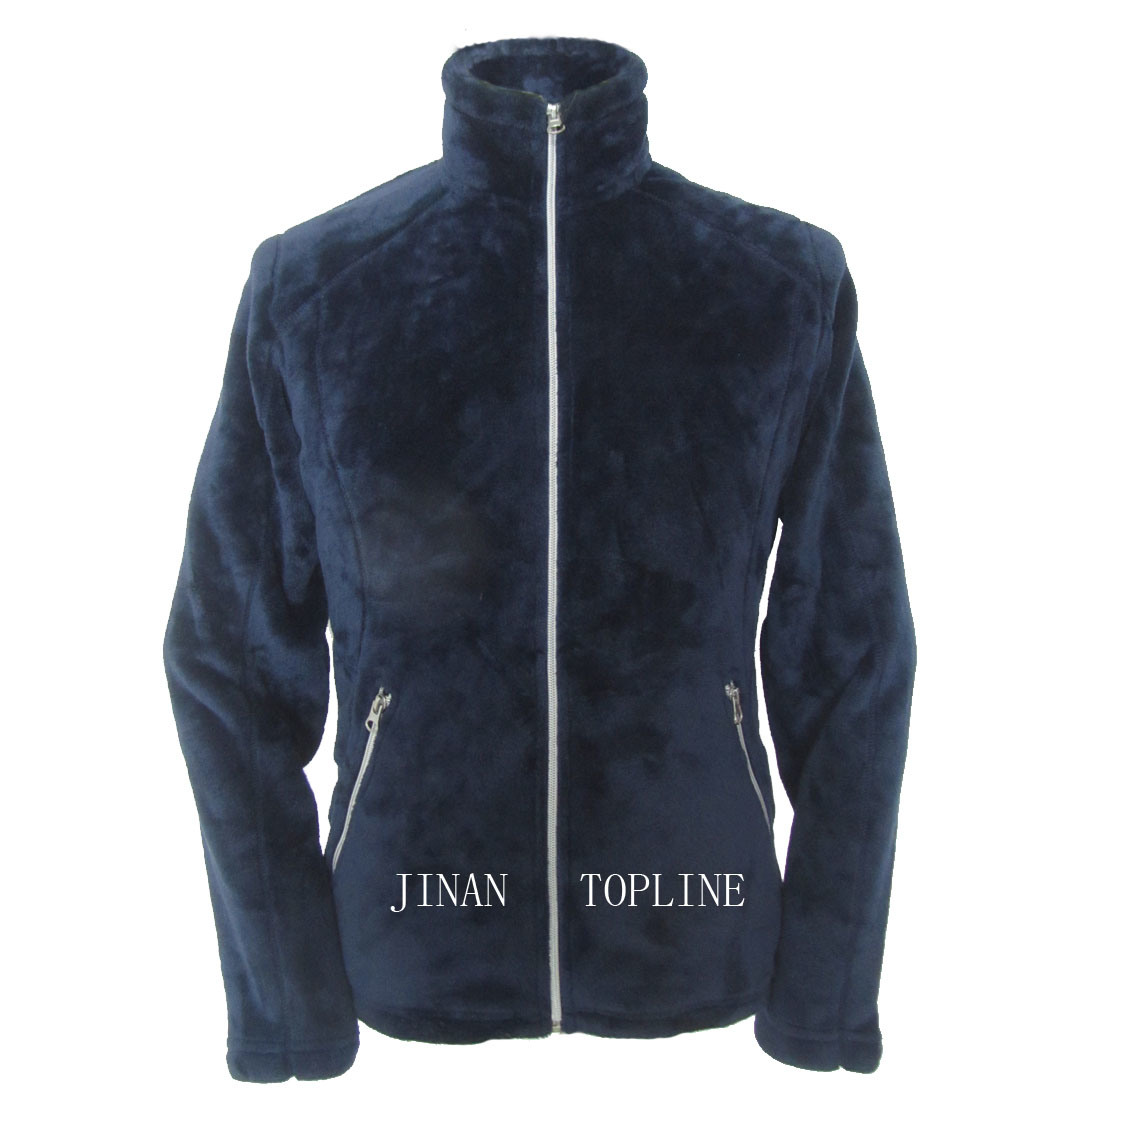 Ladies Fashion Fake/Faux Fur Thermal Leisure Jacket